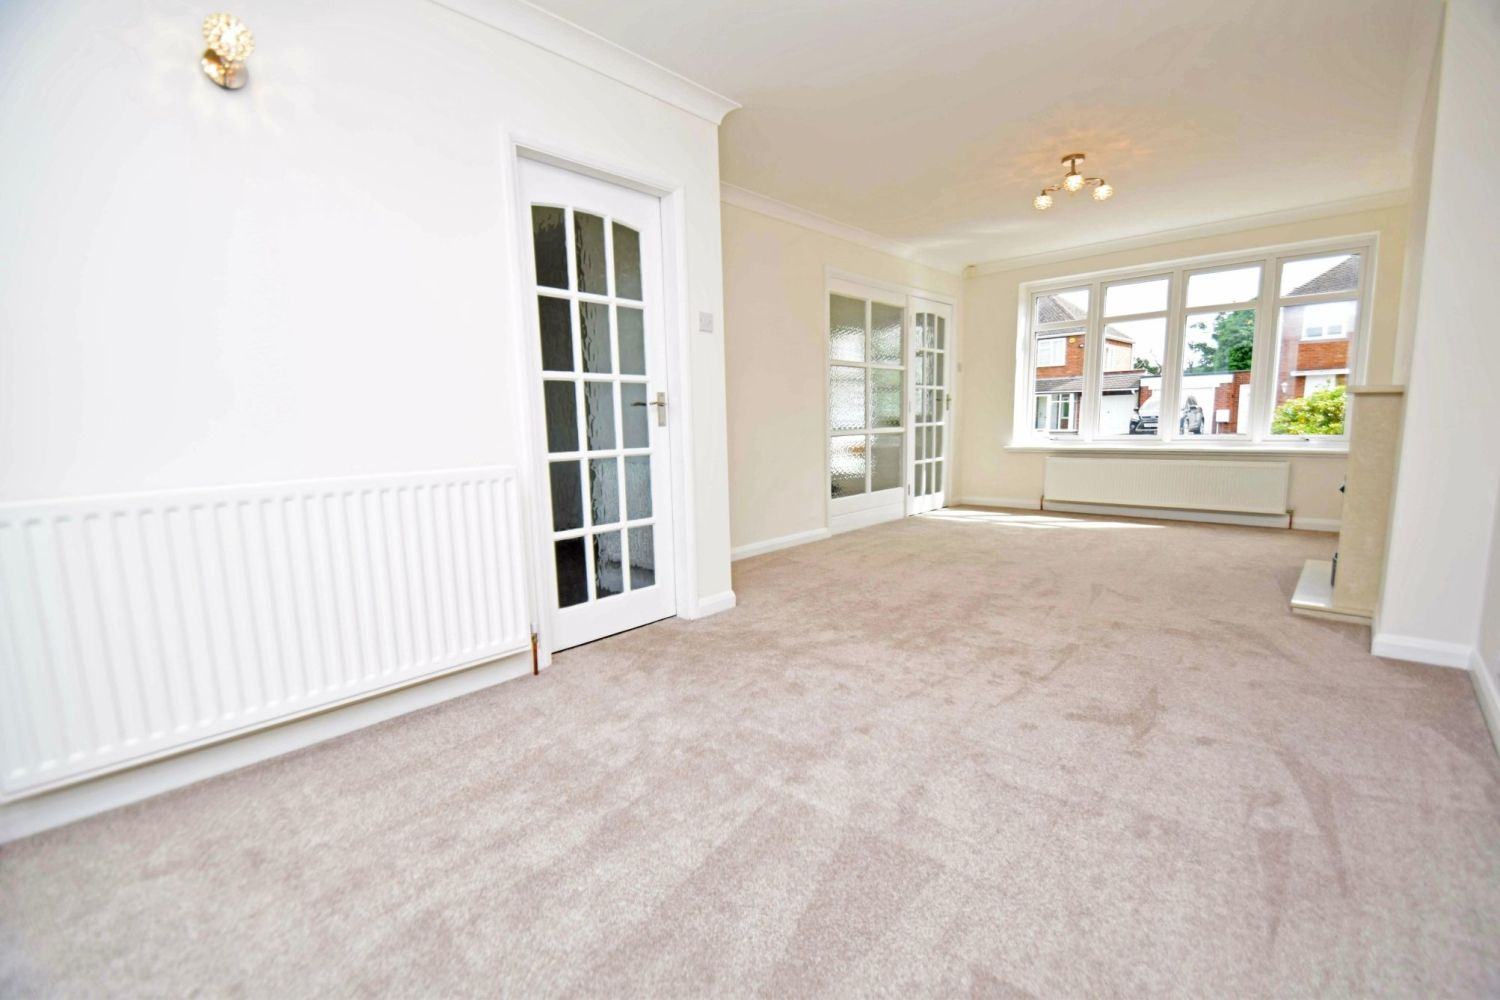 3 bed semi-detached for sale in Beachcroft Road, Wall Heath 3